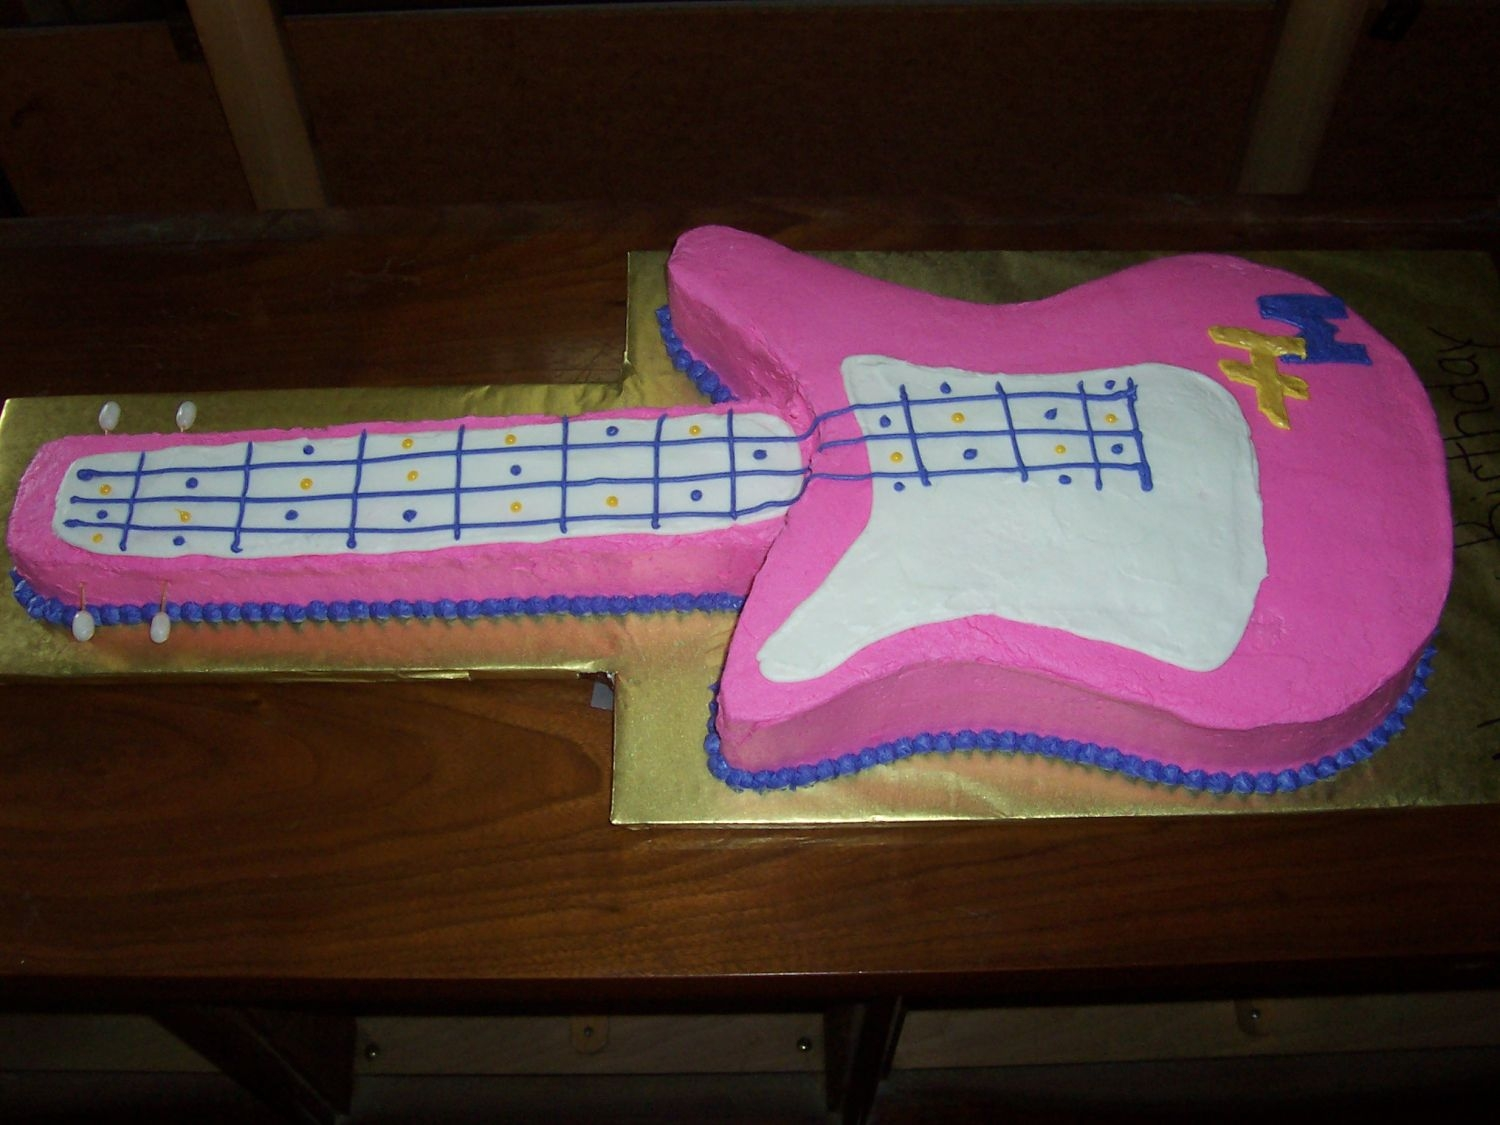 Hannah Montant Guitar Cake The cake is french vanilla w/Indydebi's buttercream icing. The very end of the neck it RKT. The tuning knobs are french vanilla jelly...